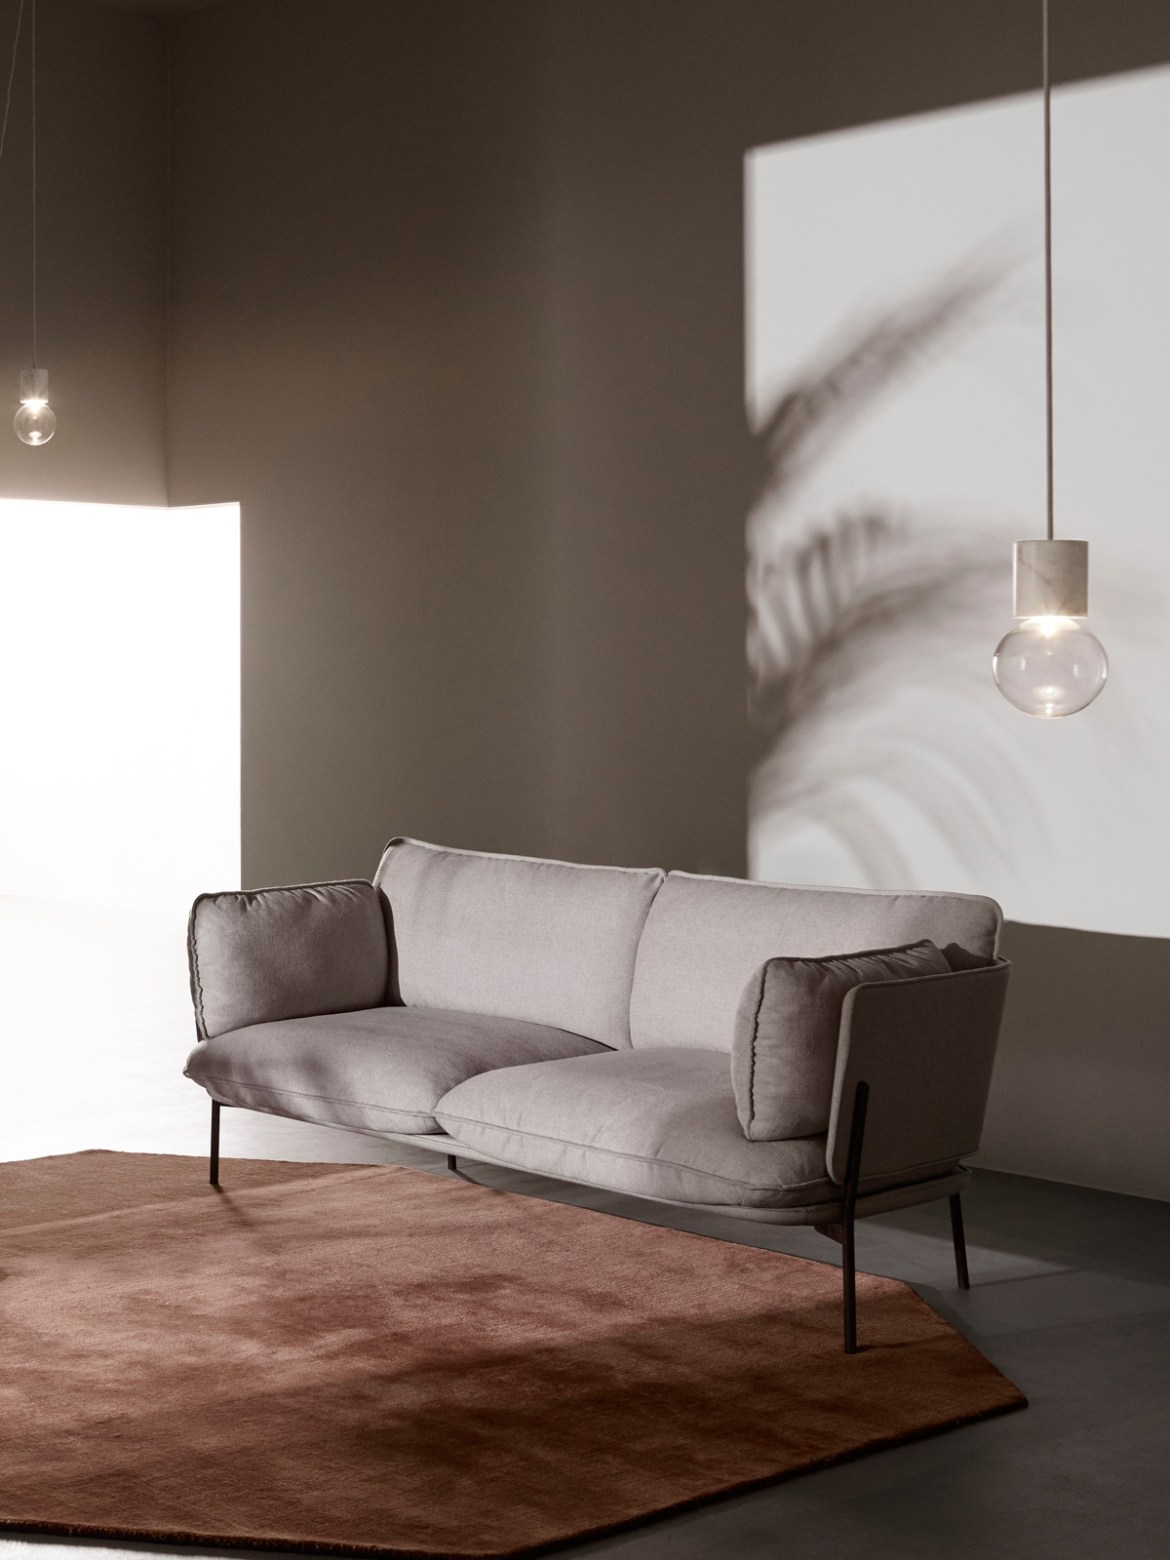 DesignOrt Blog: Designerleuchten aus Marmor &tradition Marble light